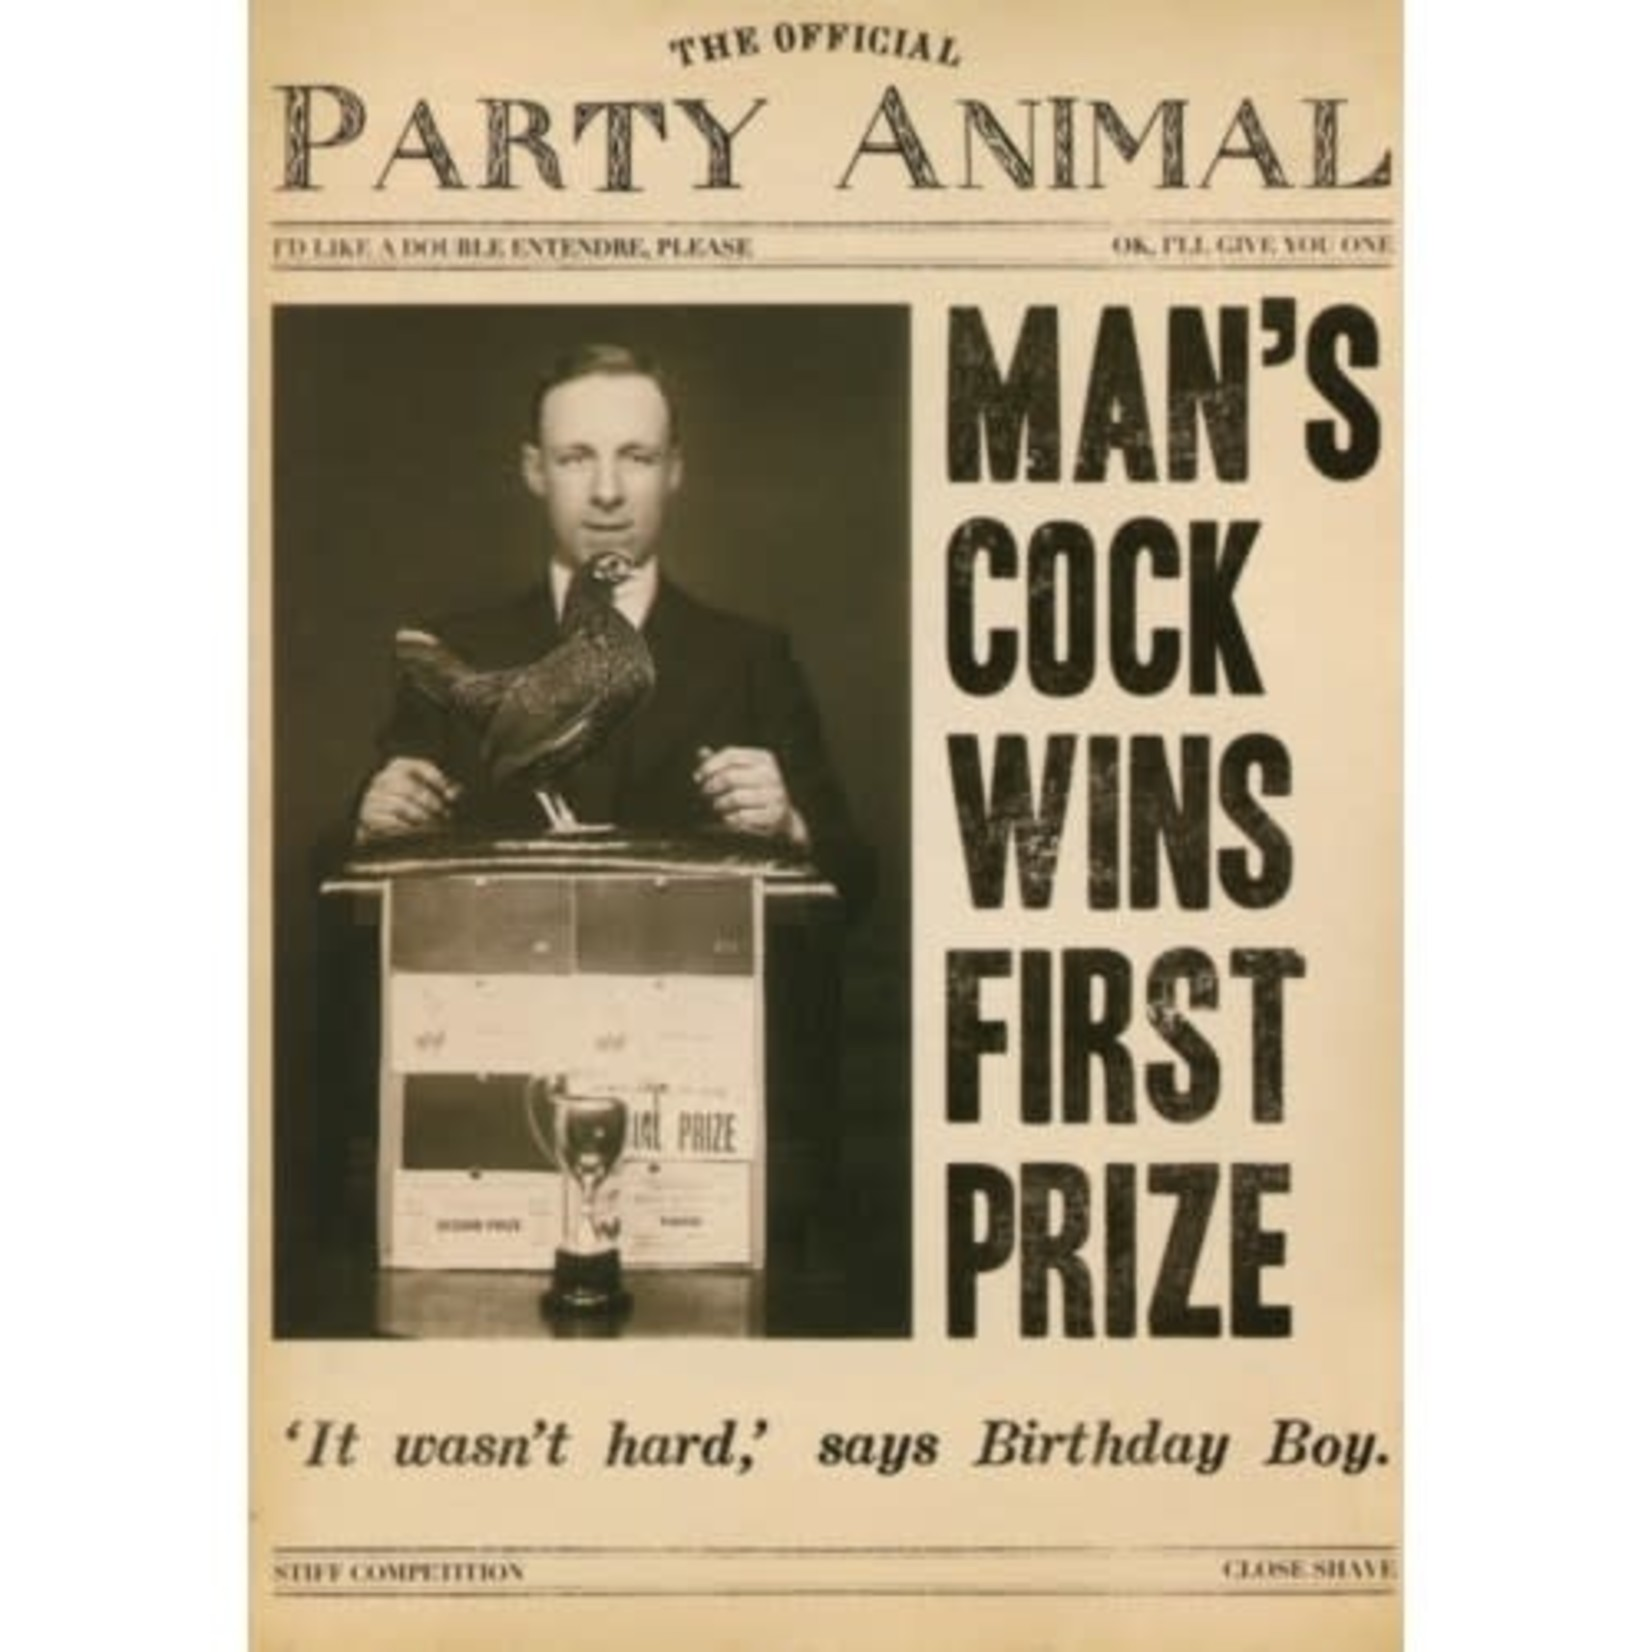 COCK WINS FIRST PRIZE CARD